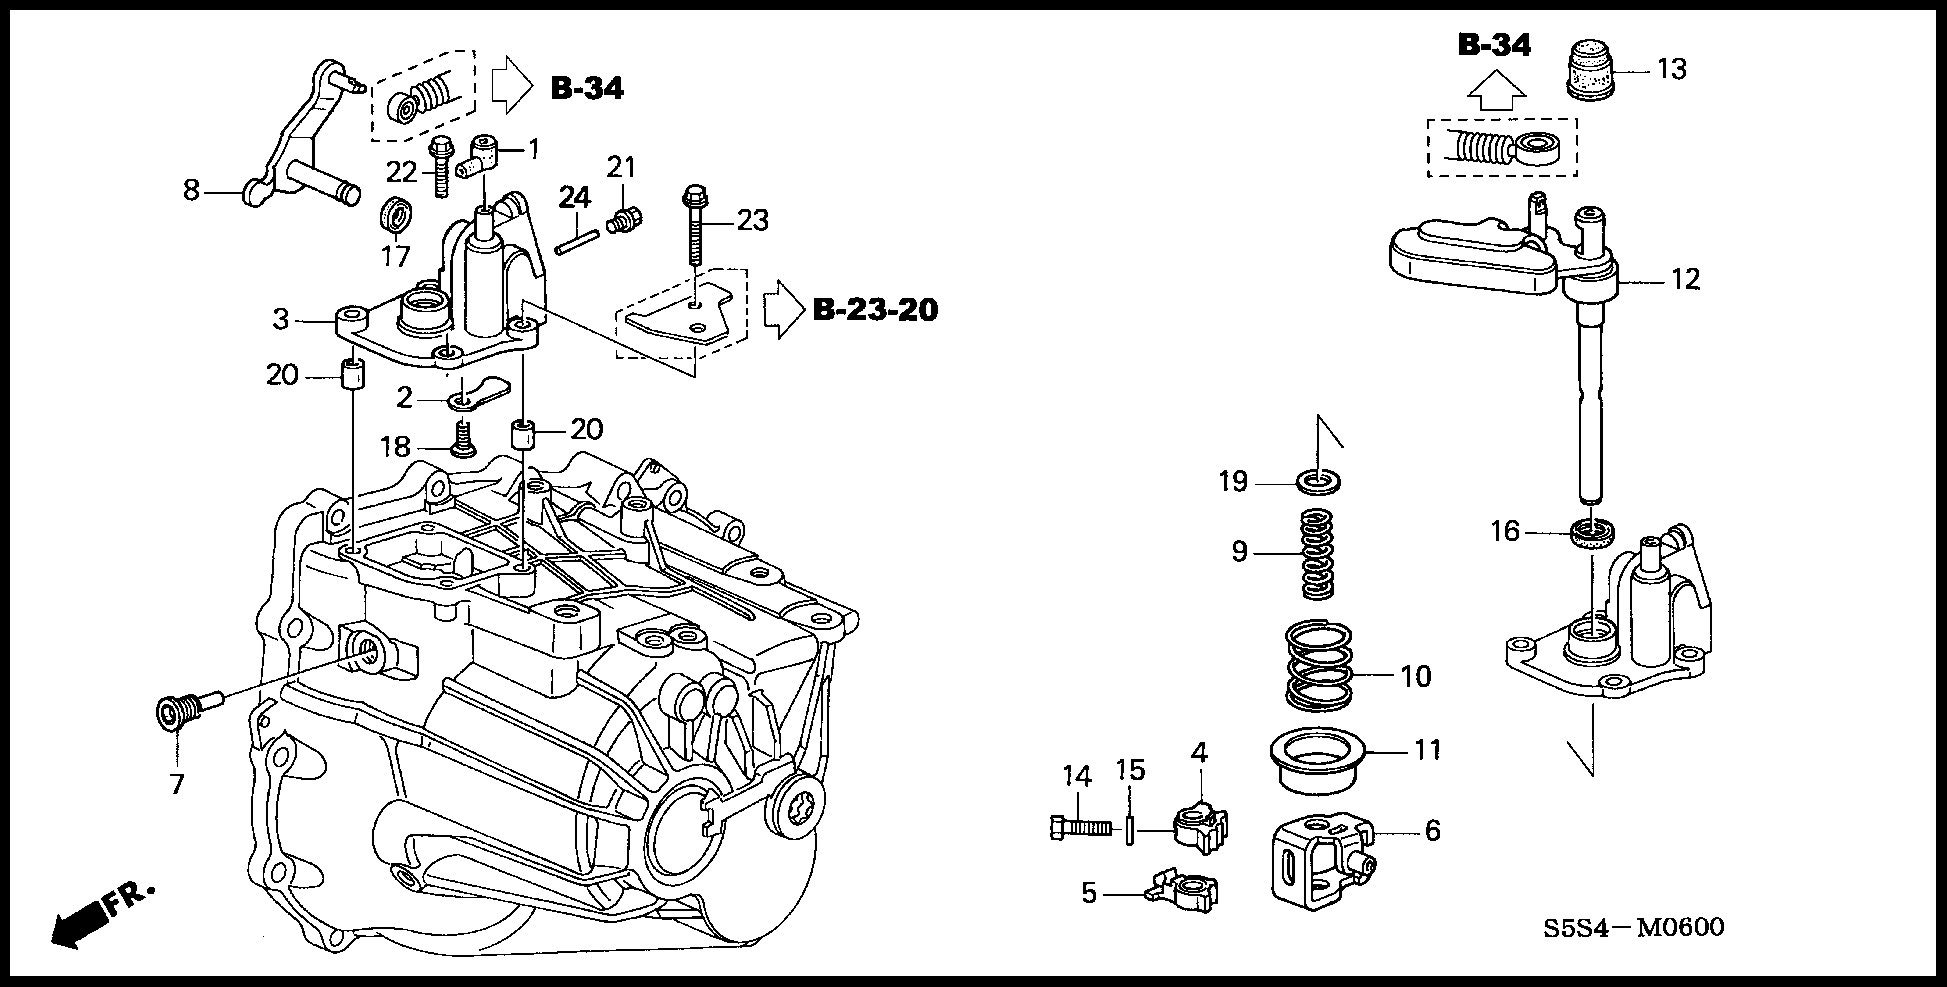 Acura Rsx Engine Harness Diagram